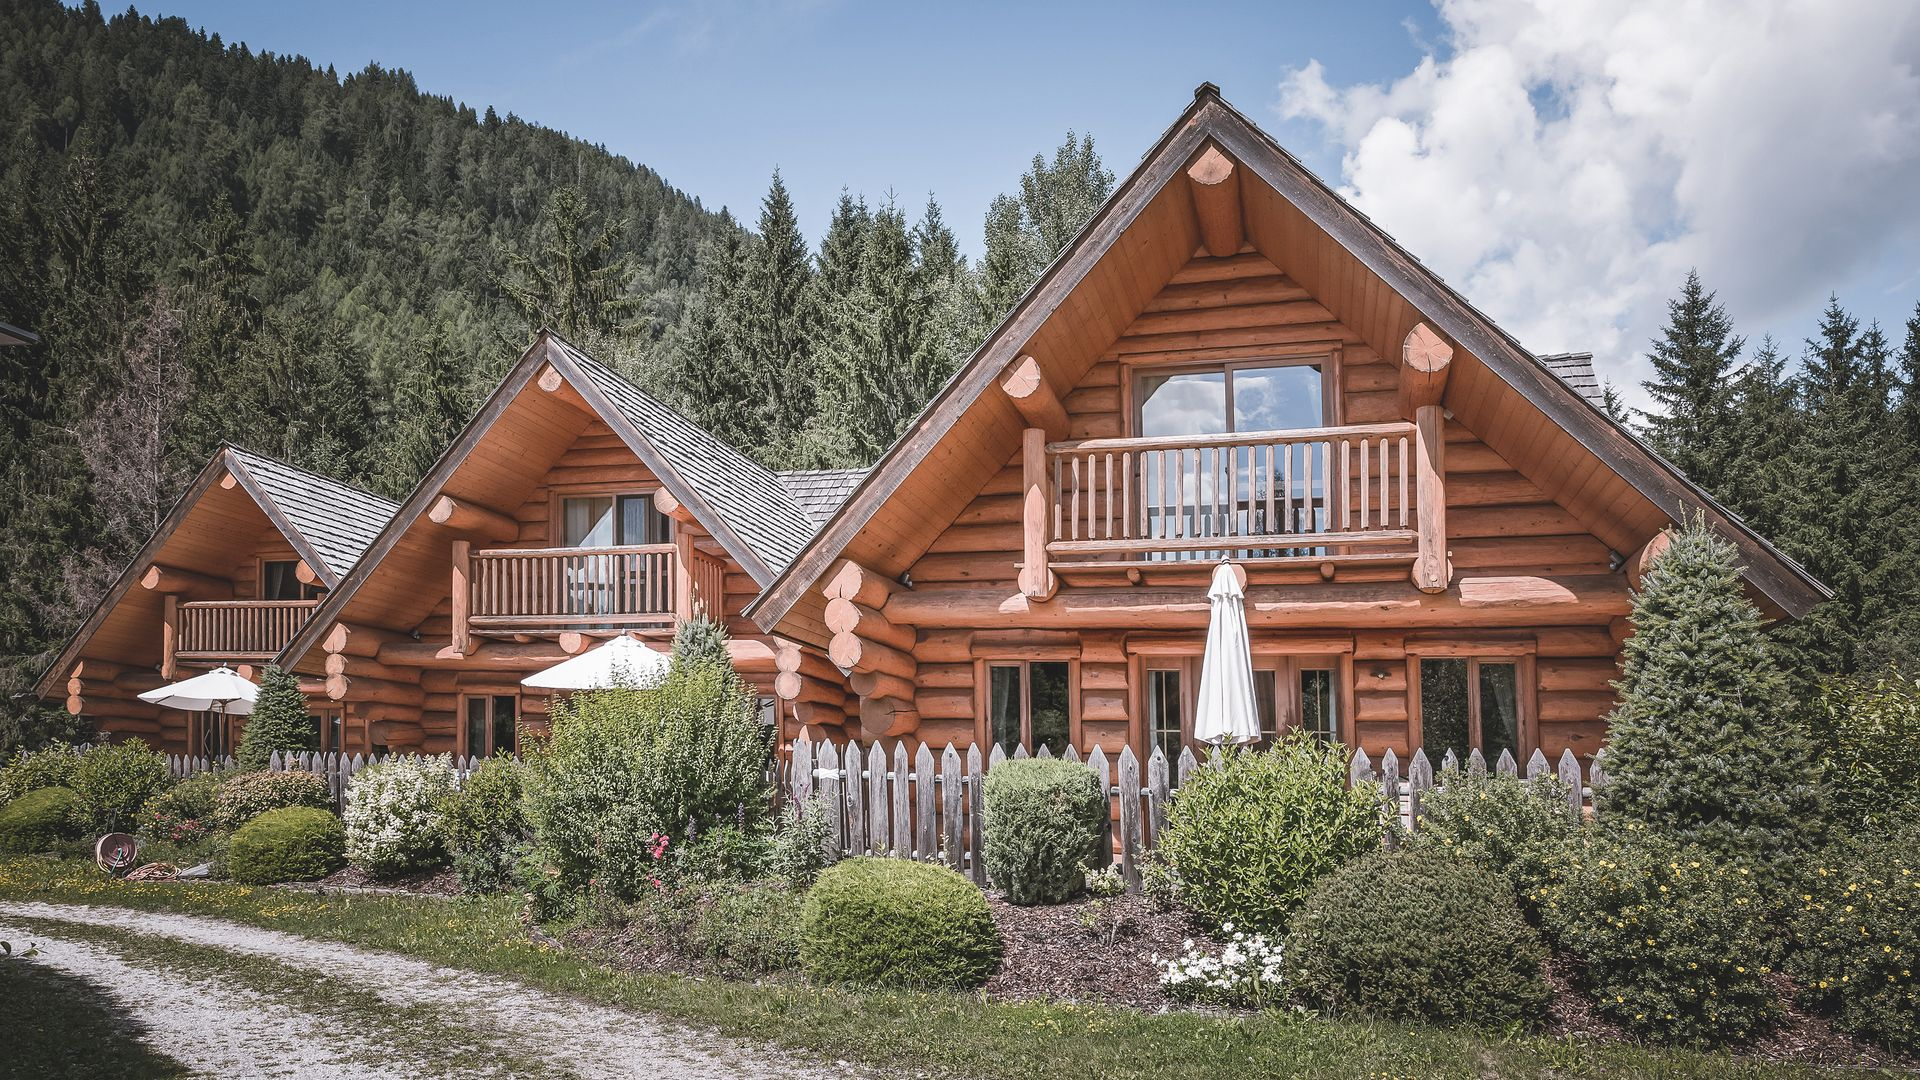 Corones Camping Chalet